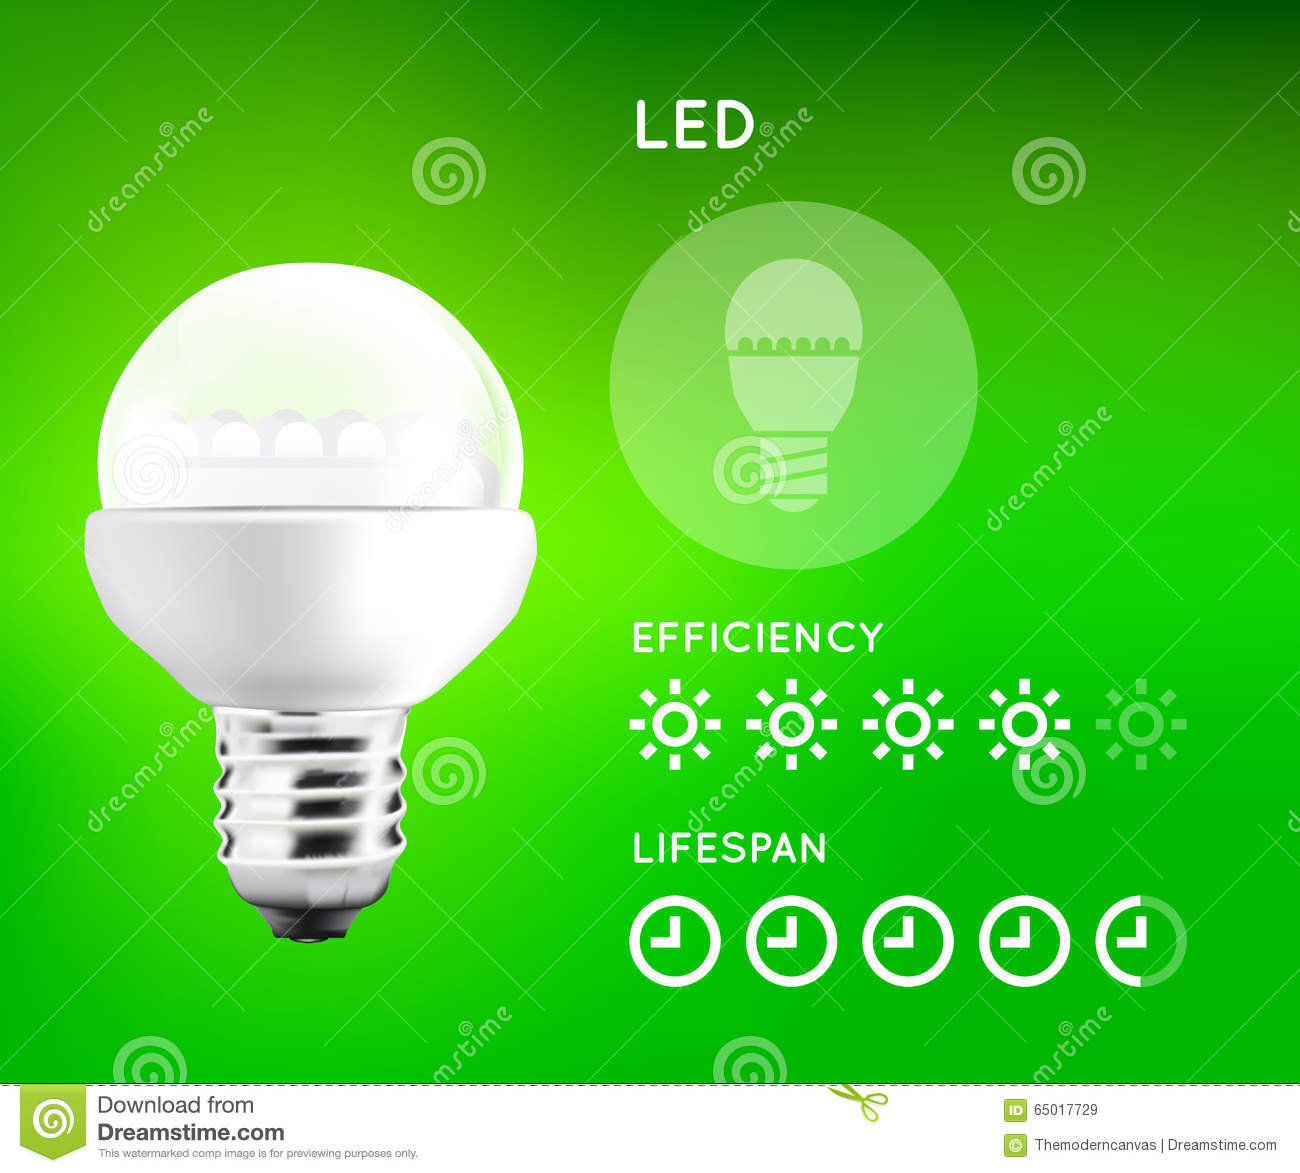 LED Light Bulb Infographic With Approximate Estimate Of Energy And ... for Led Light Bulbs Comparison  67qdu